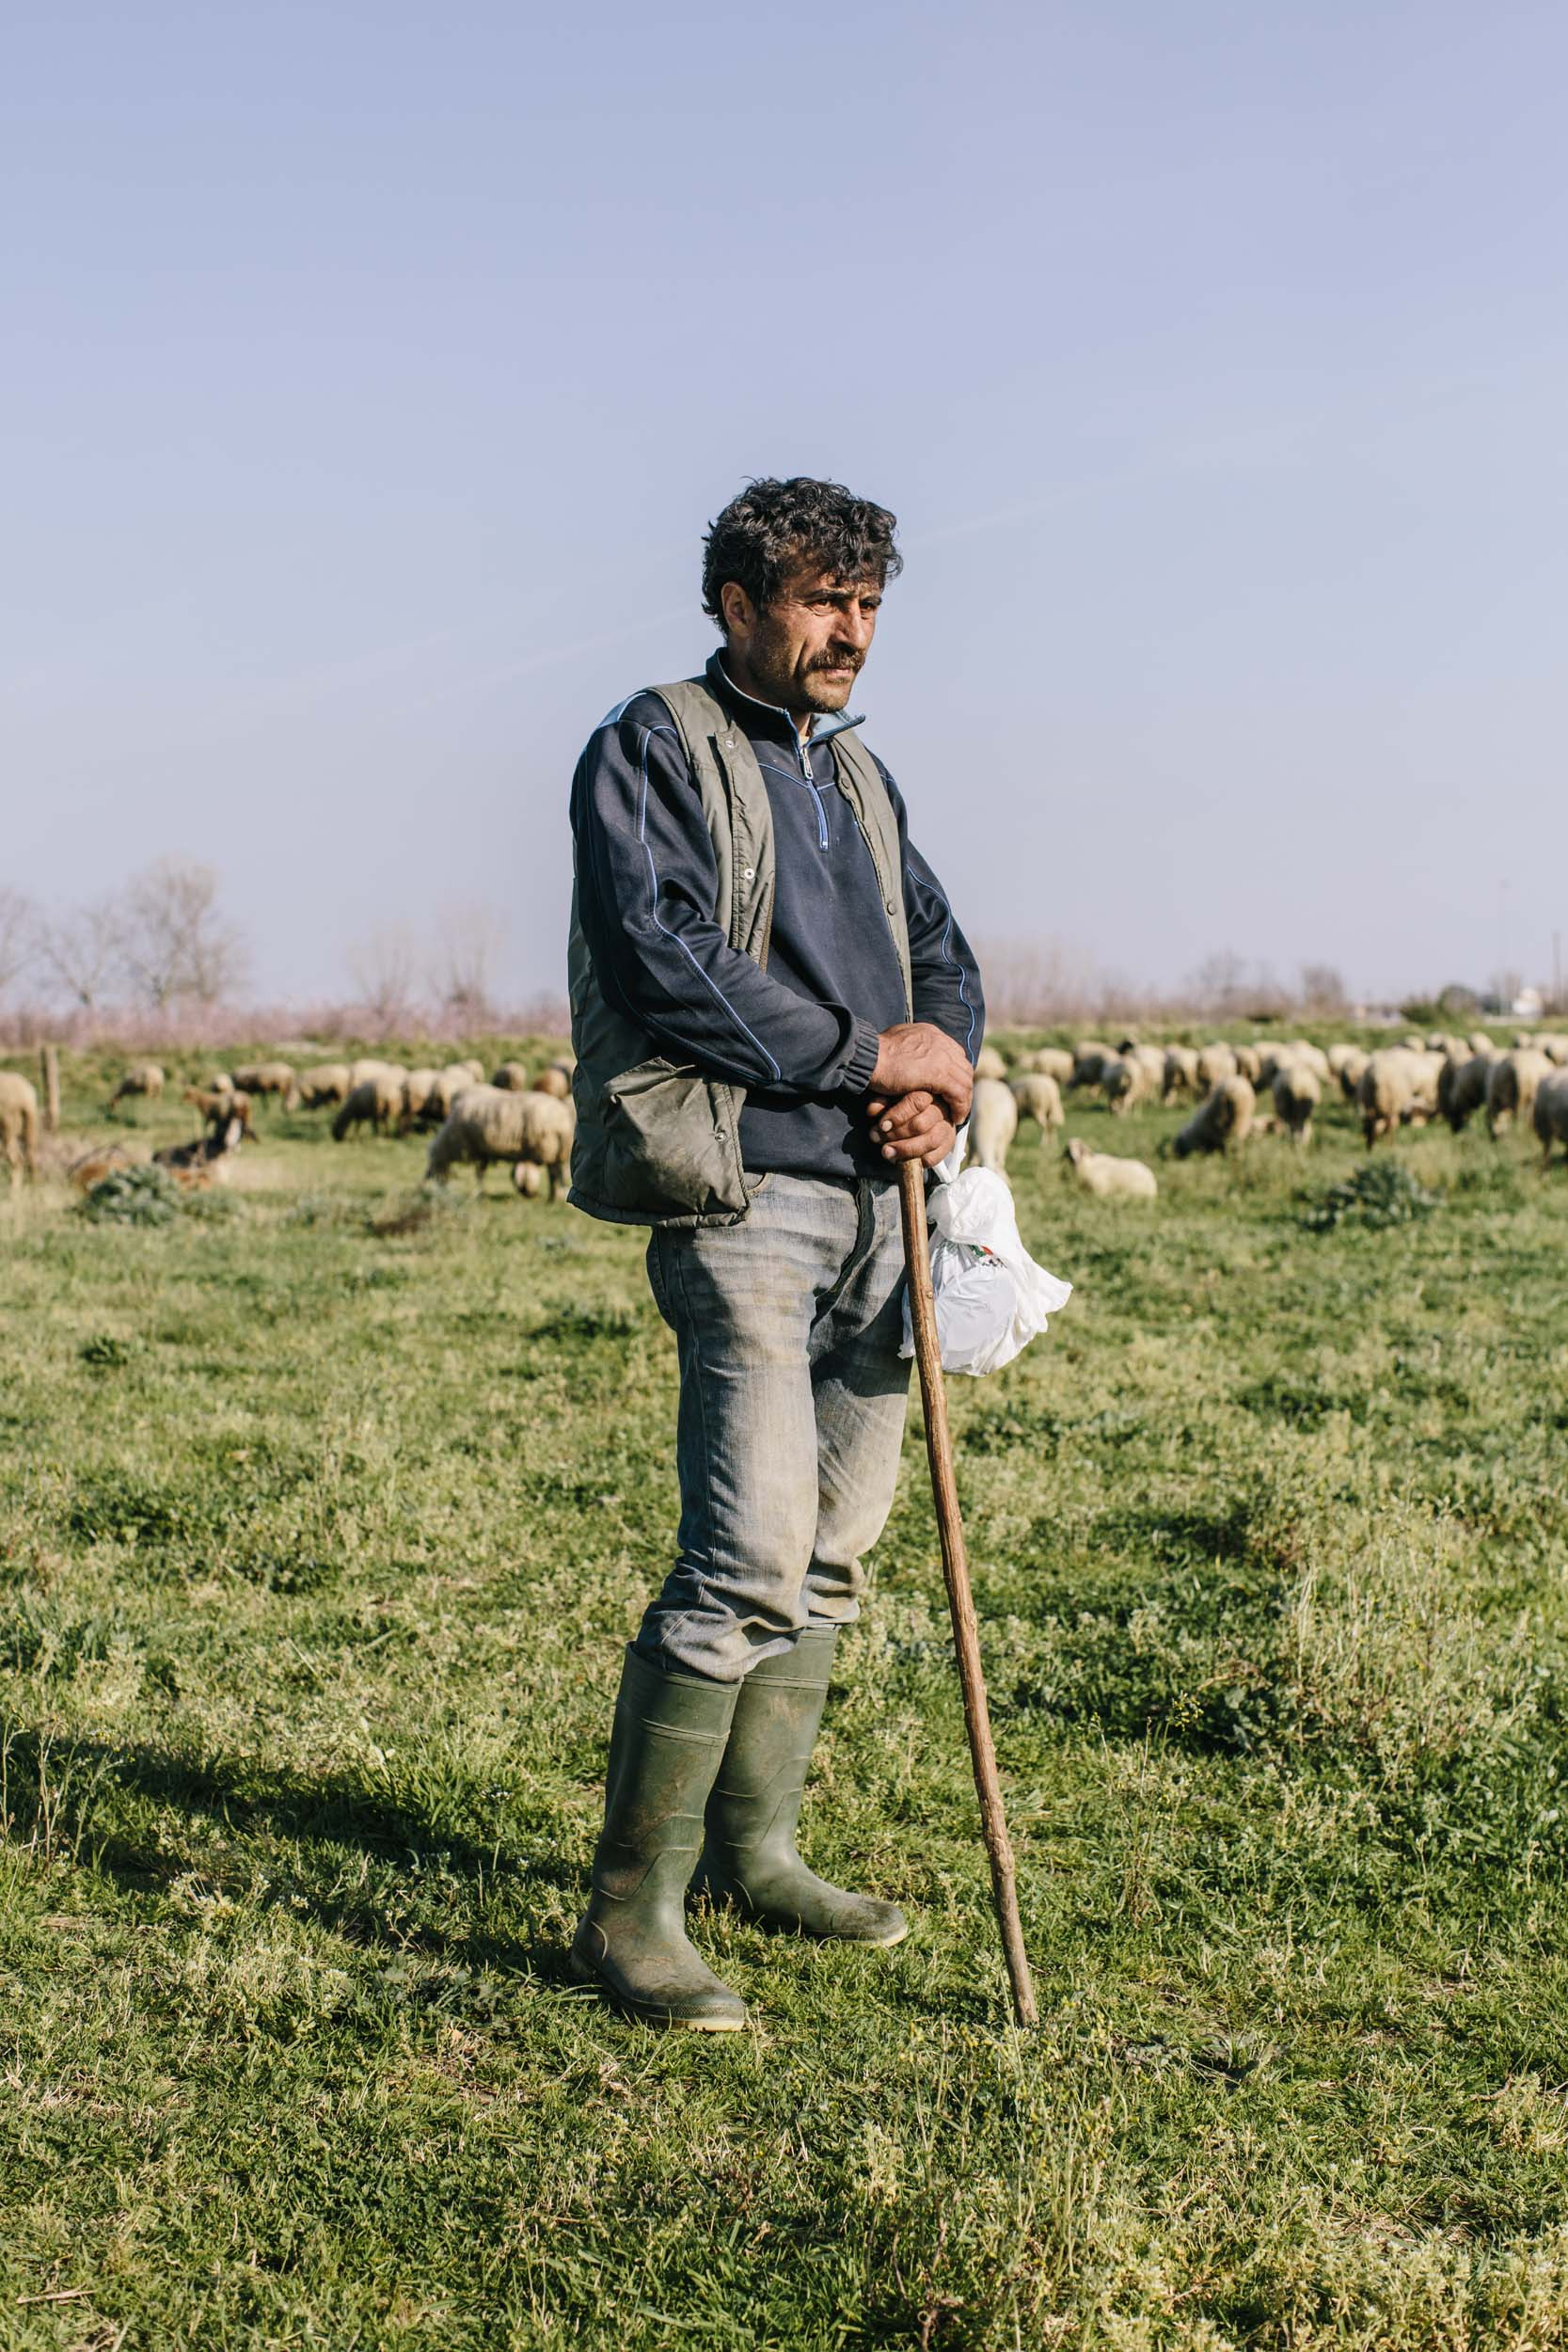 sheep herder watches flock on toxic land